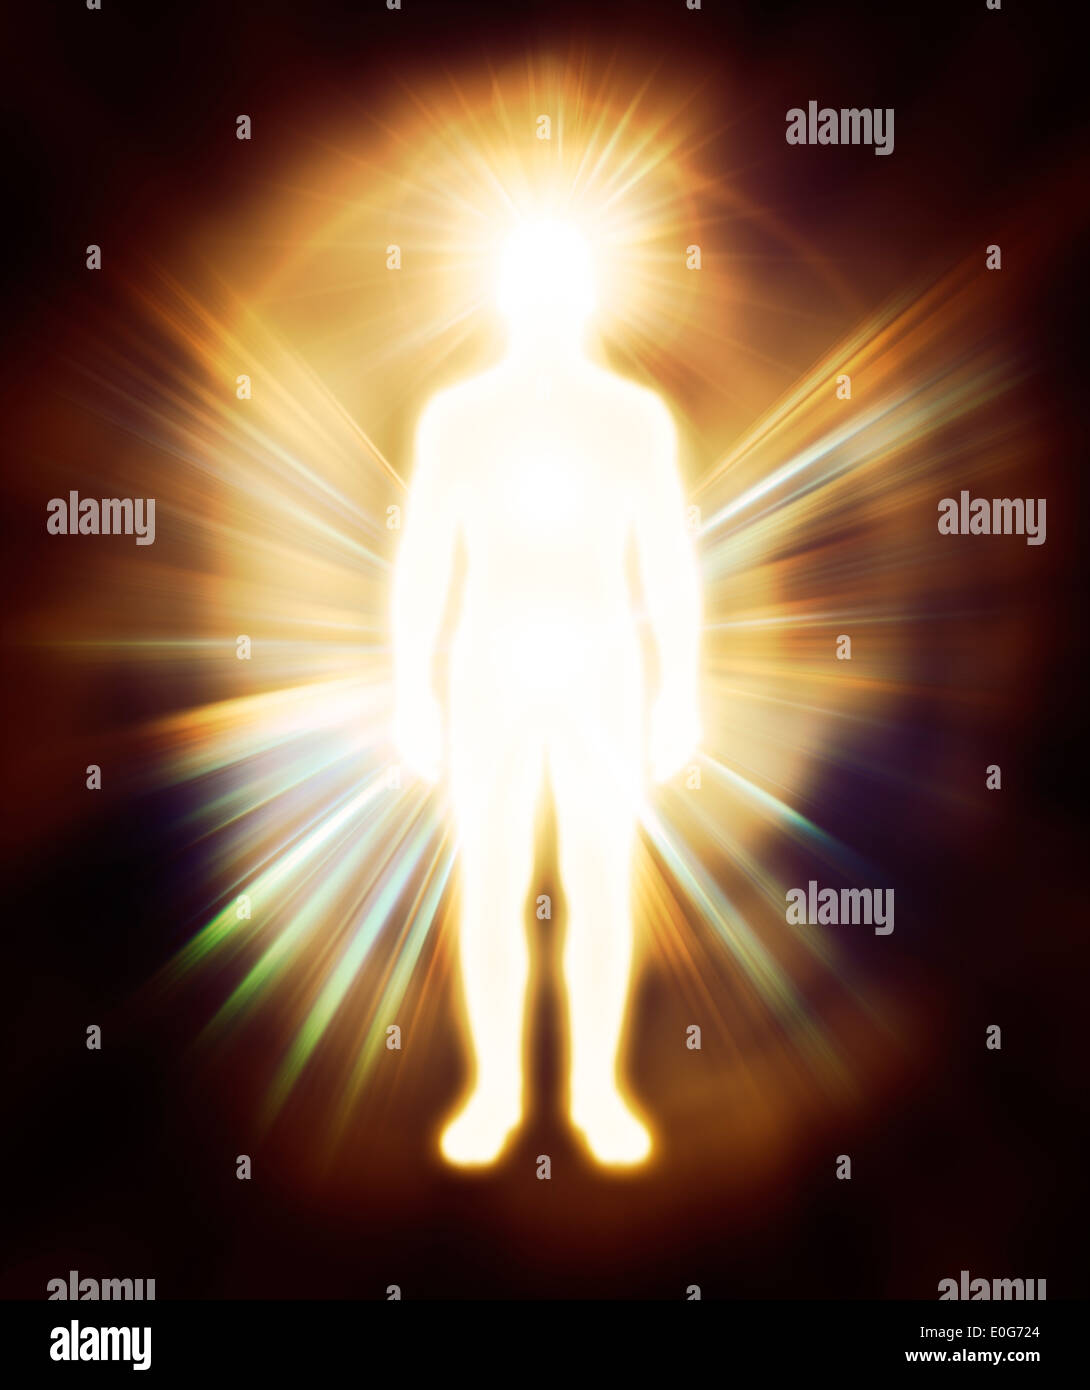 Glowing Human Energy Body Qi Energy Emanations Man As